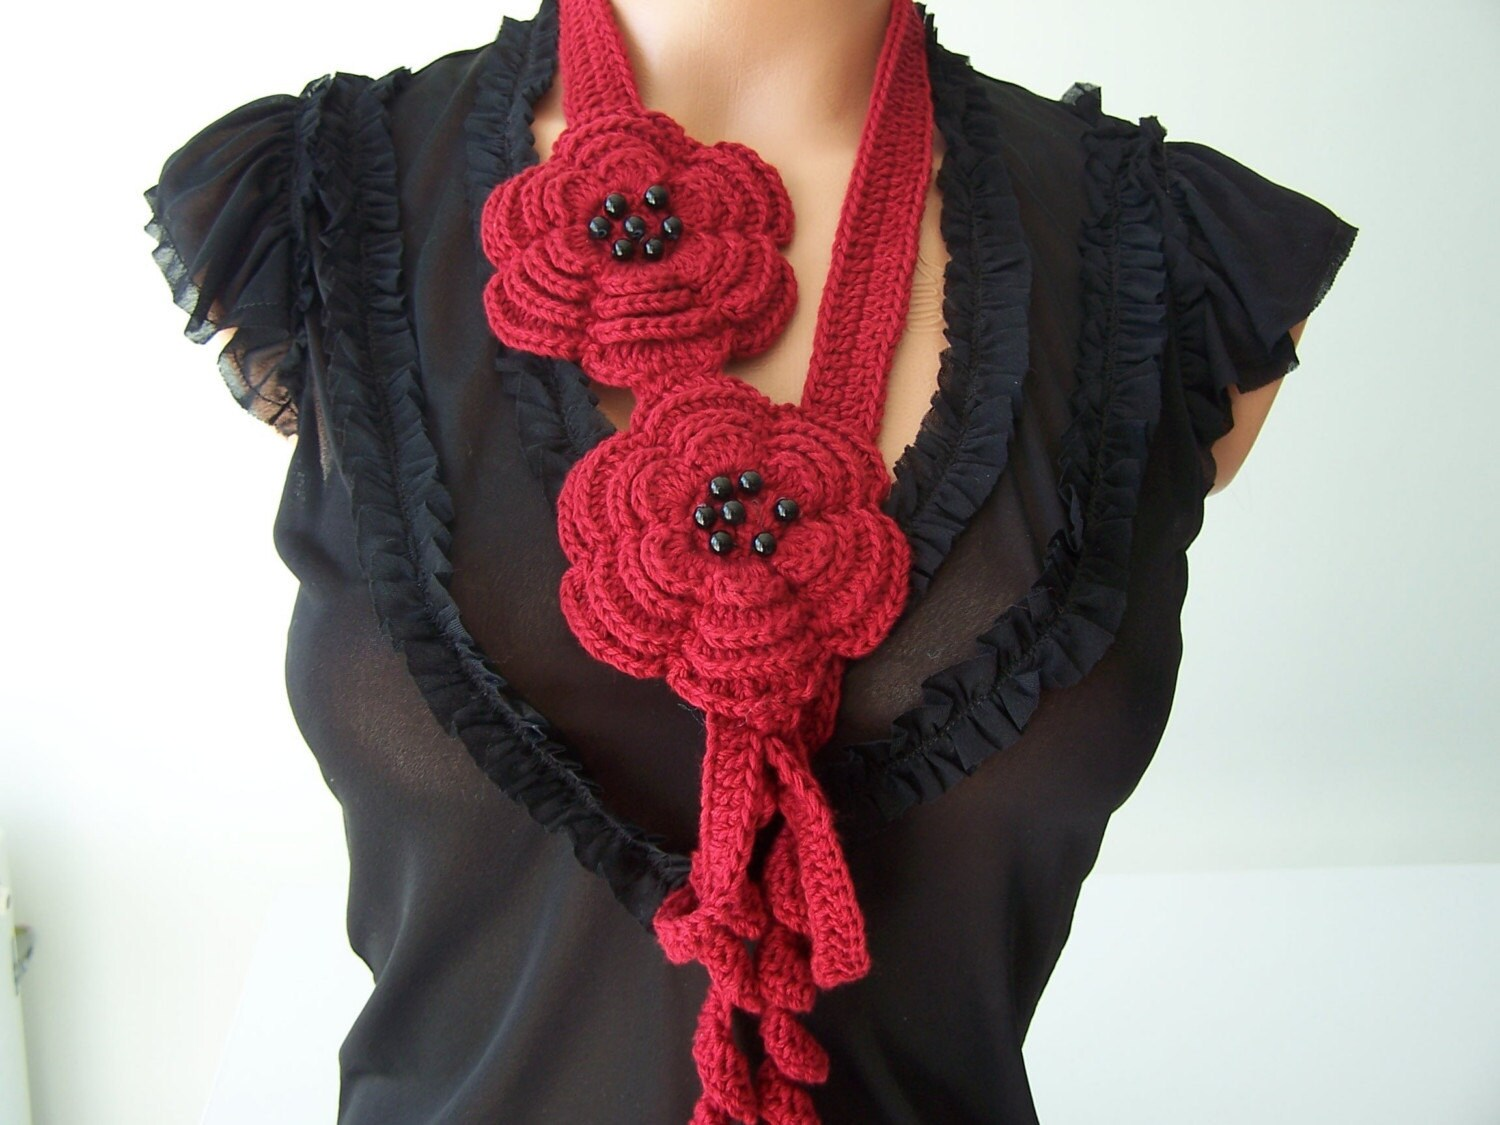 Ebruk on Etsy trendy knitting and crochet artist own designs from ebruk.etsy.com